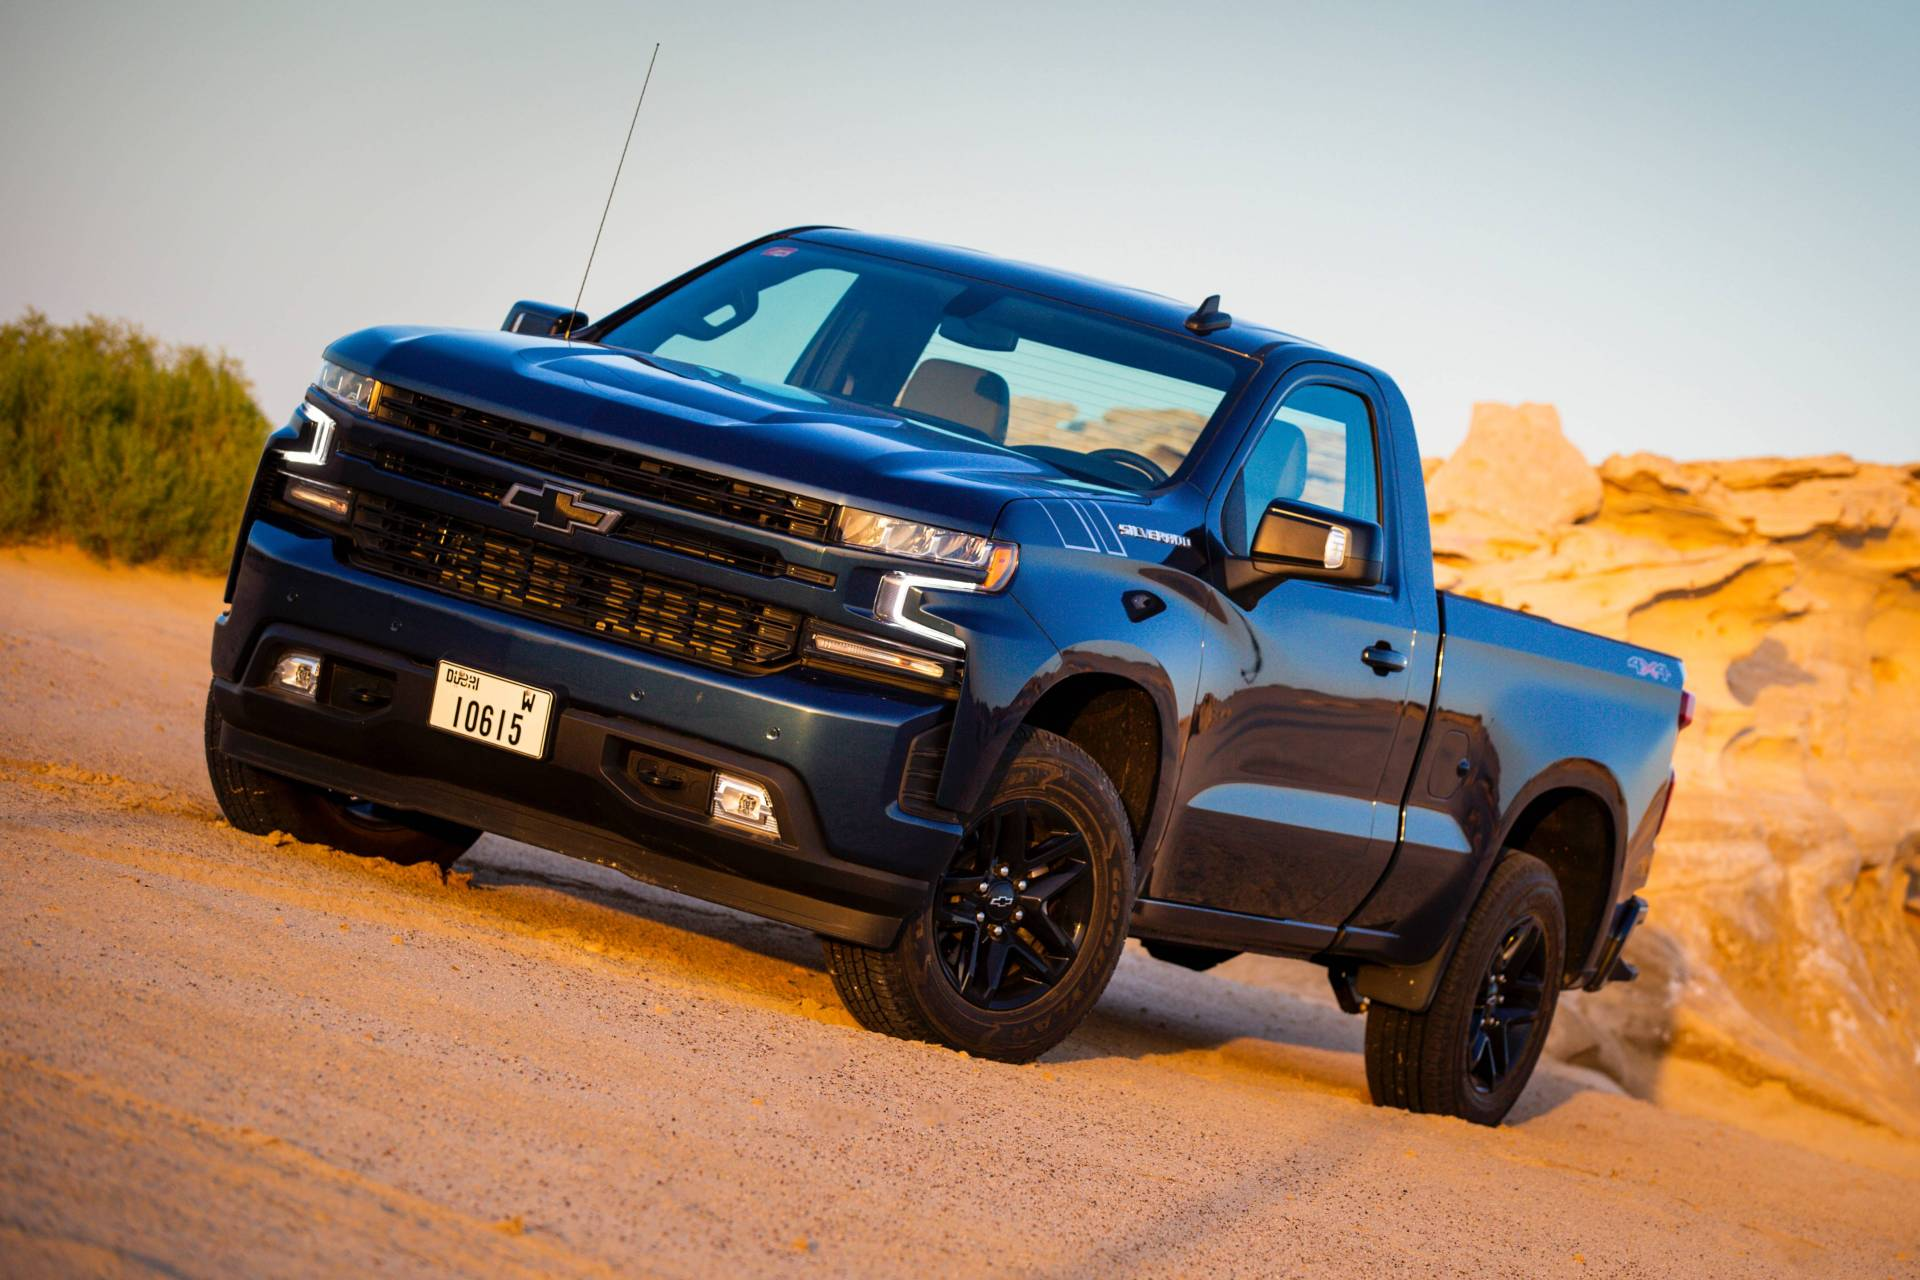 2019 Chevrolet Silverado Single Cab Available As RST ...